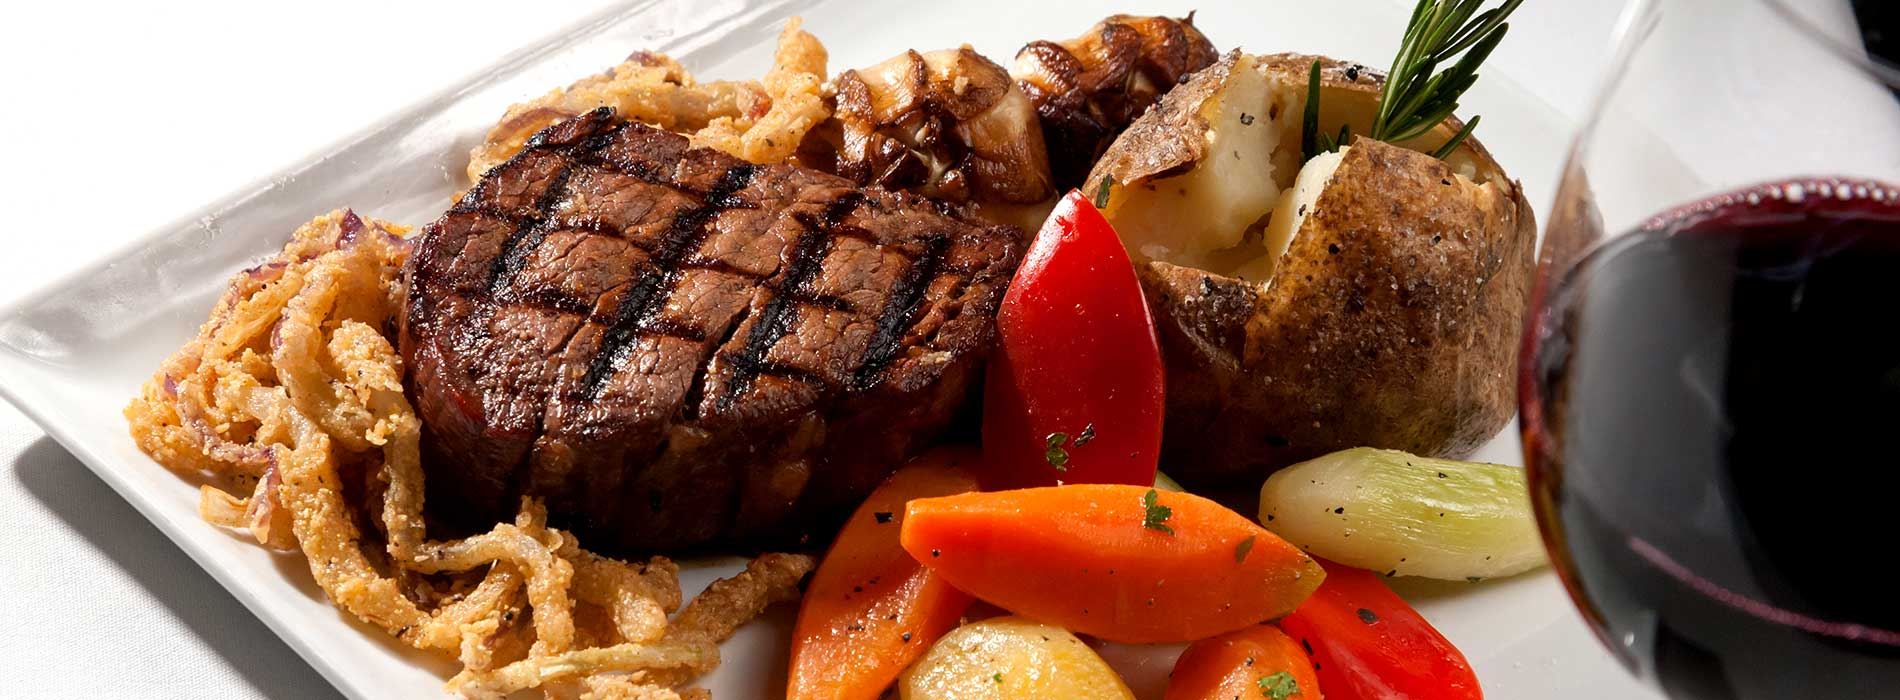 Home Steak En